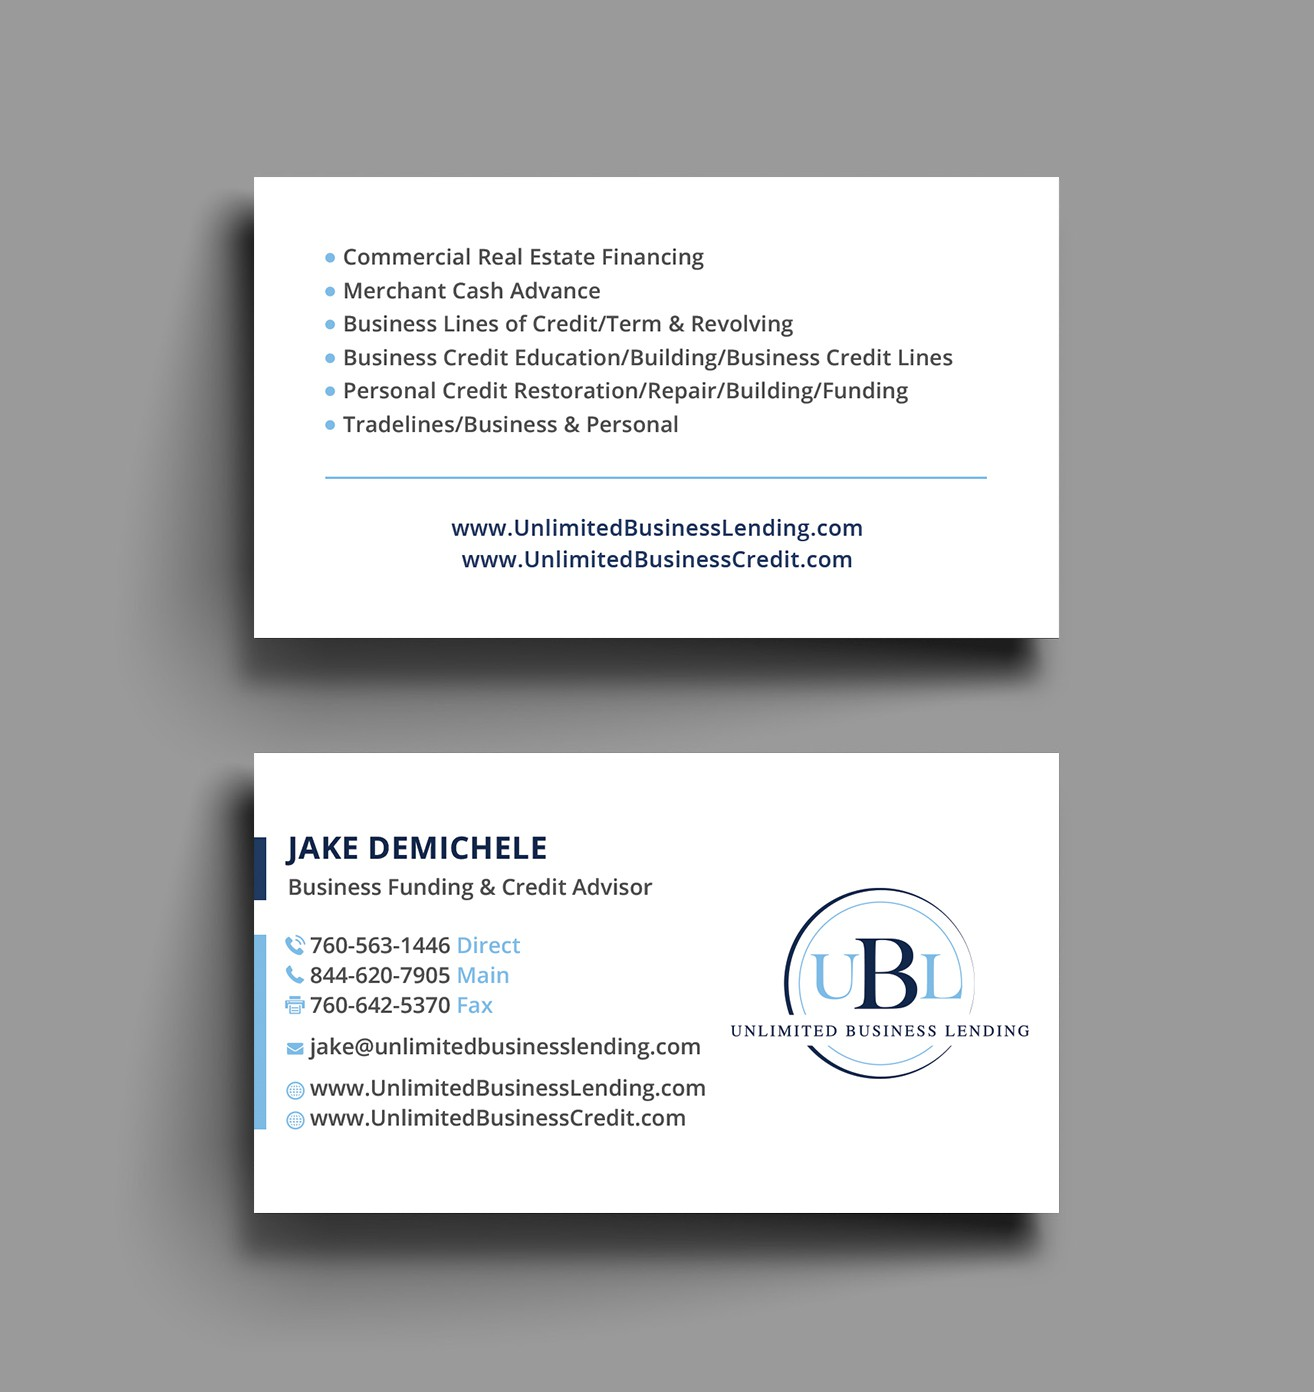 Easy, Conservative Business Card Design - Financial Services